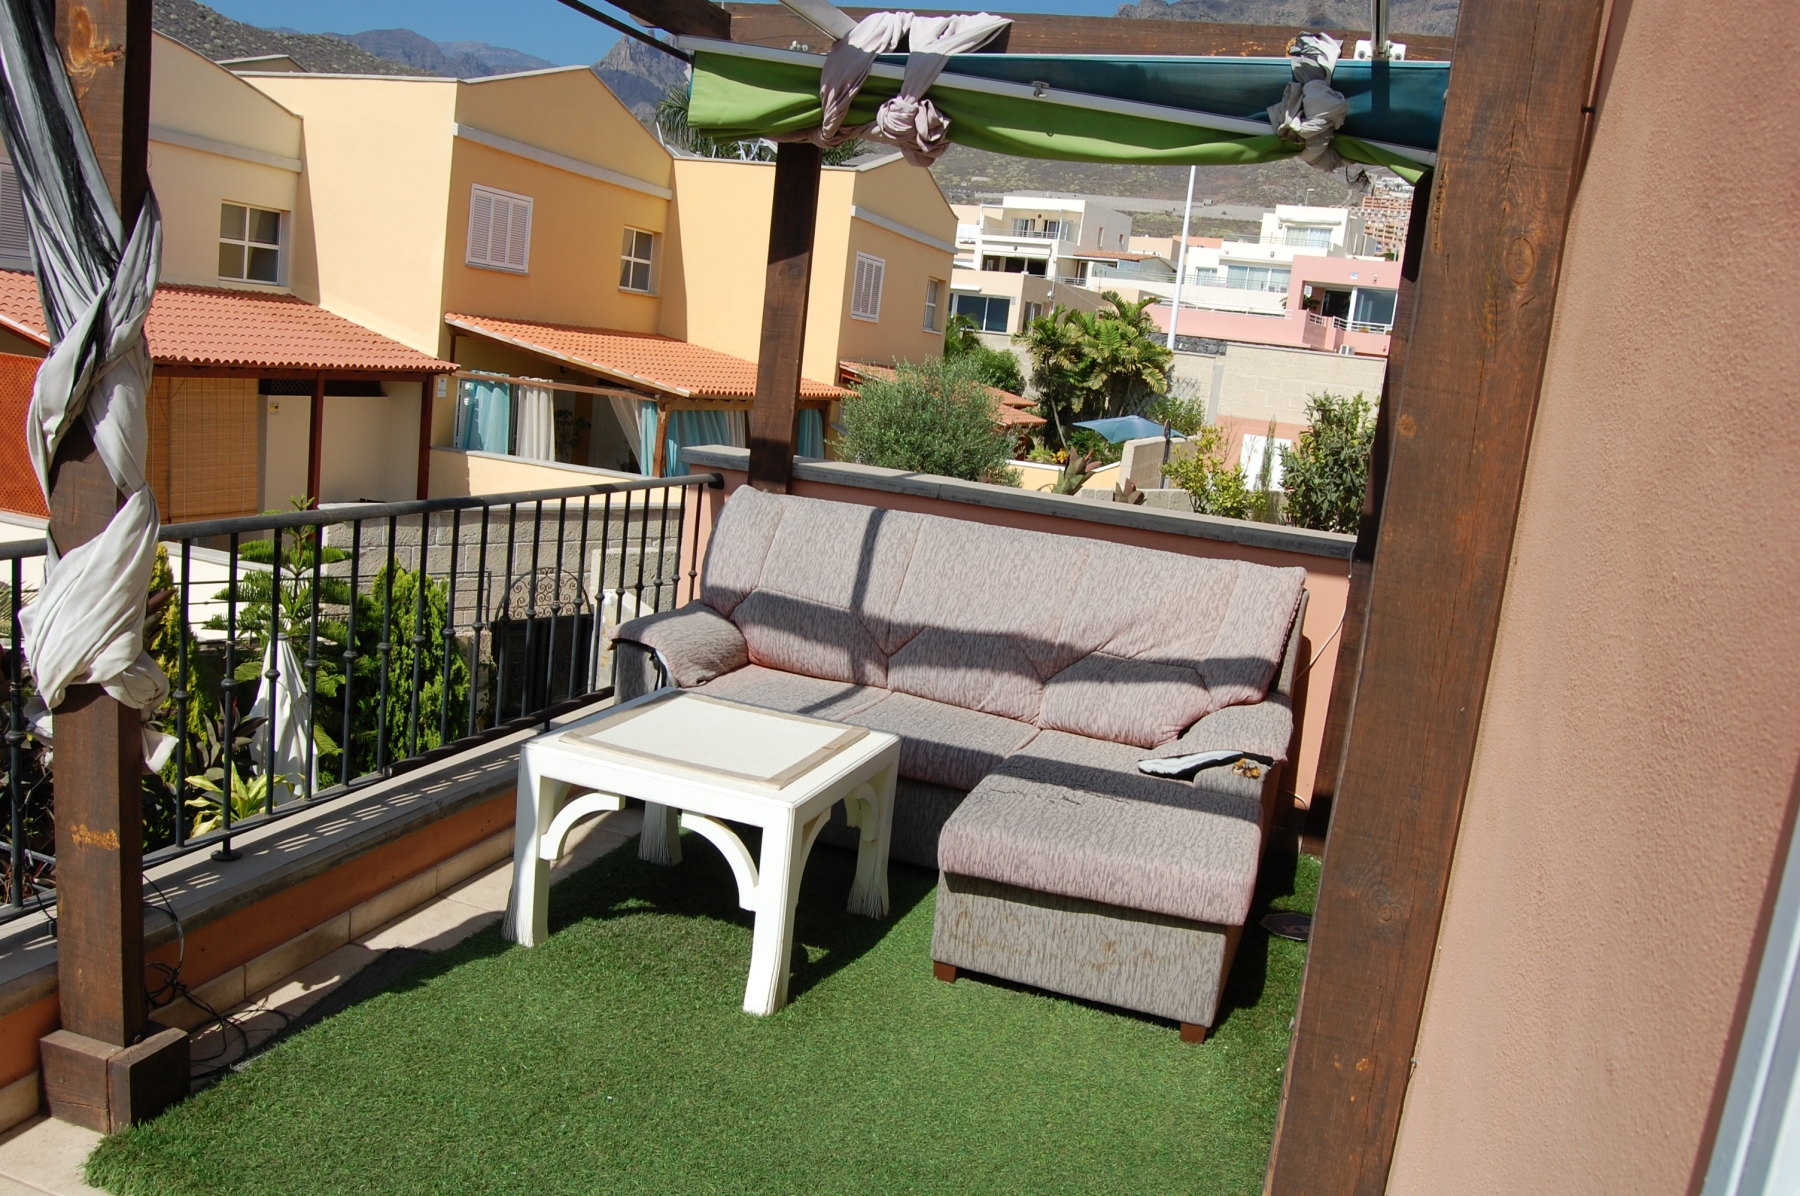 Properties for Sale in Tenerife, Canary Islands, Spain | SylkWayStar Real Estate. Townhouse 3 bedrooms 2 baths Madroñal. Image-24689